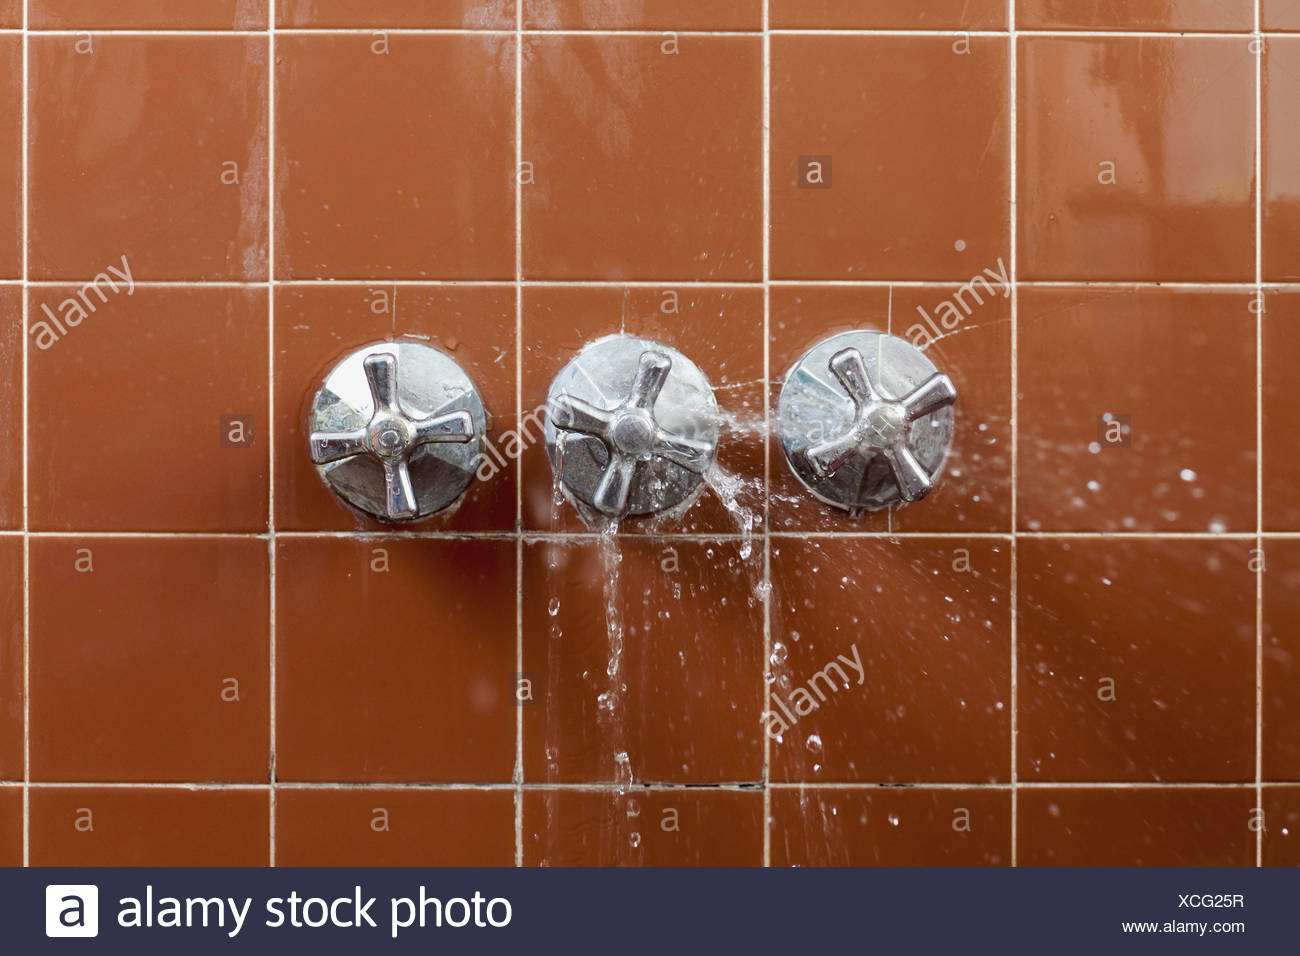 A shower faucet handle spraying leaking water - Stock Image